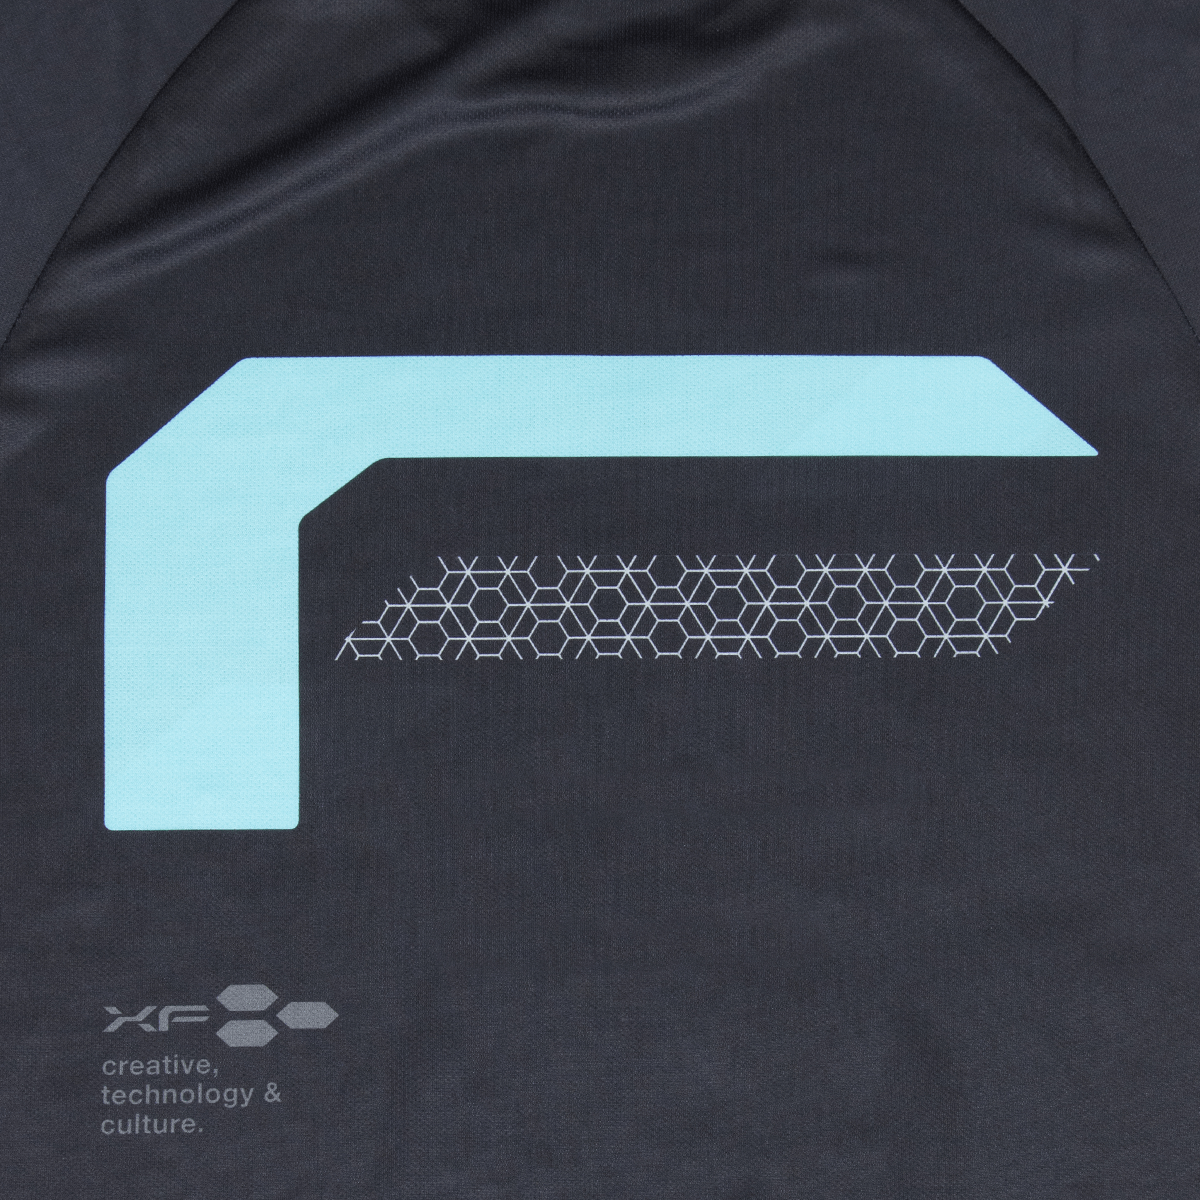 <img class='new_mark_img1' src='https://img.shop-pro.jp/img/new/icons8.gif' style='border:none;display:inline;margin:0px;padding:0px;width:auto;' />Tシャツ Design01 ブルー